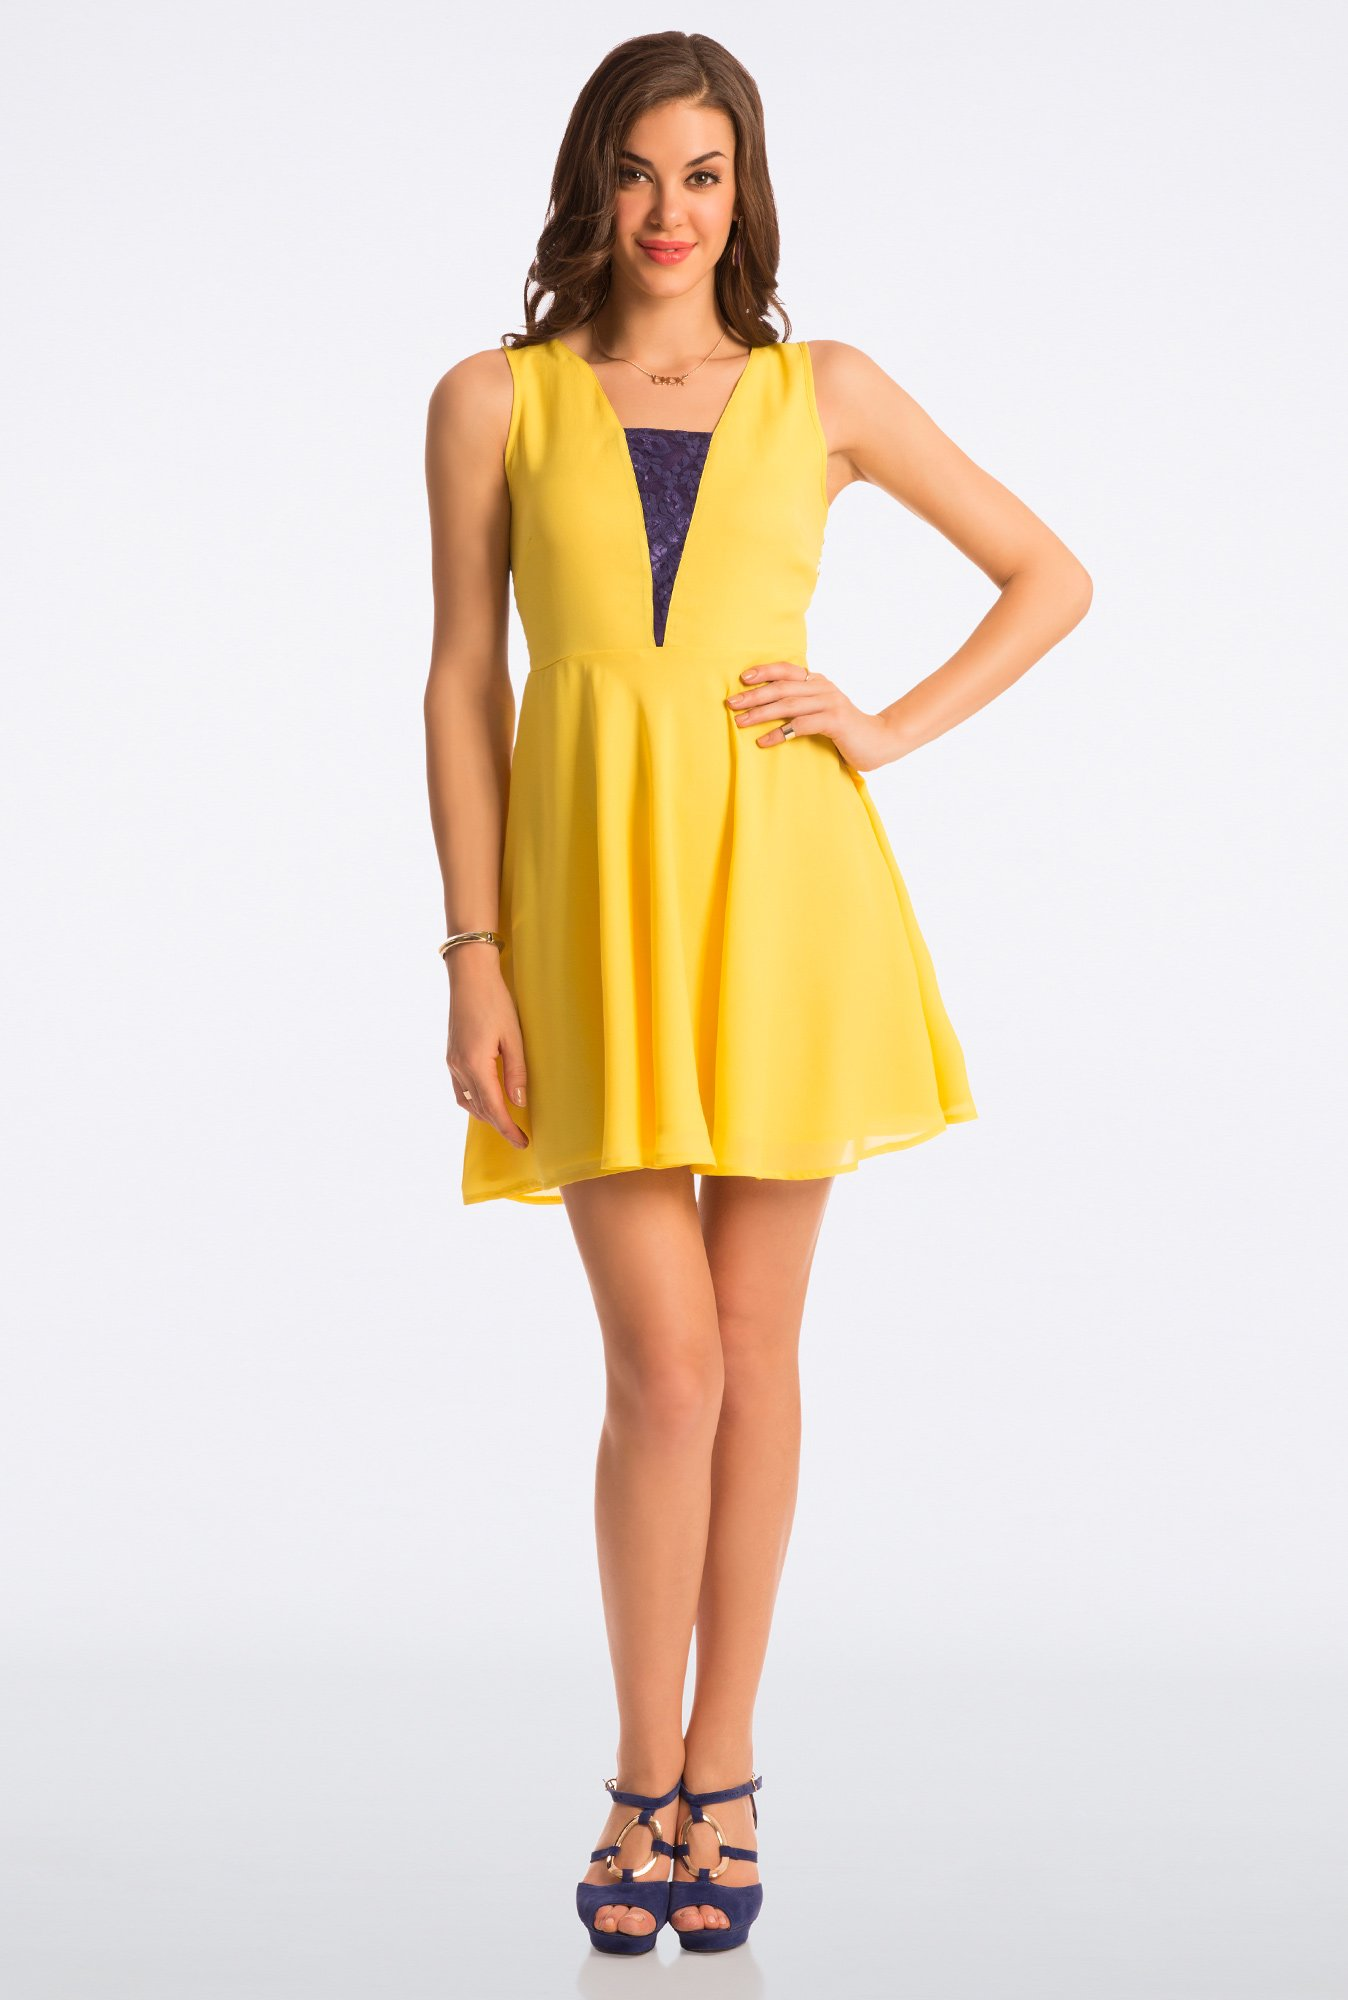 PrettySecrets Blazing Yellow Abiding Adorable Lace Dress